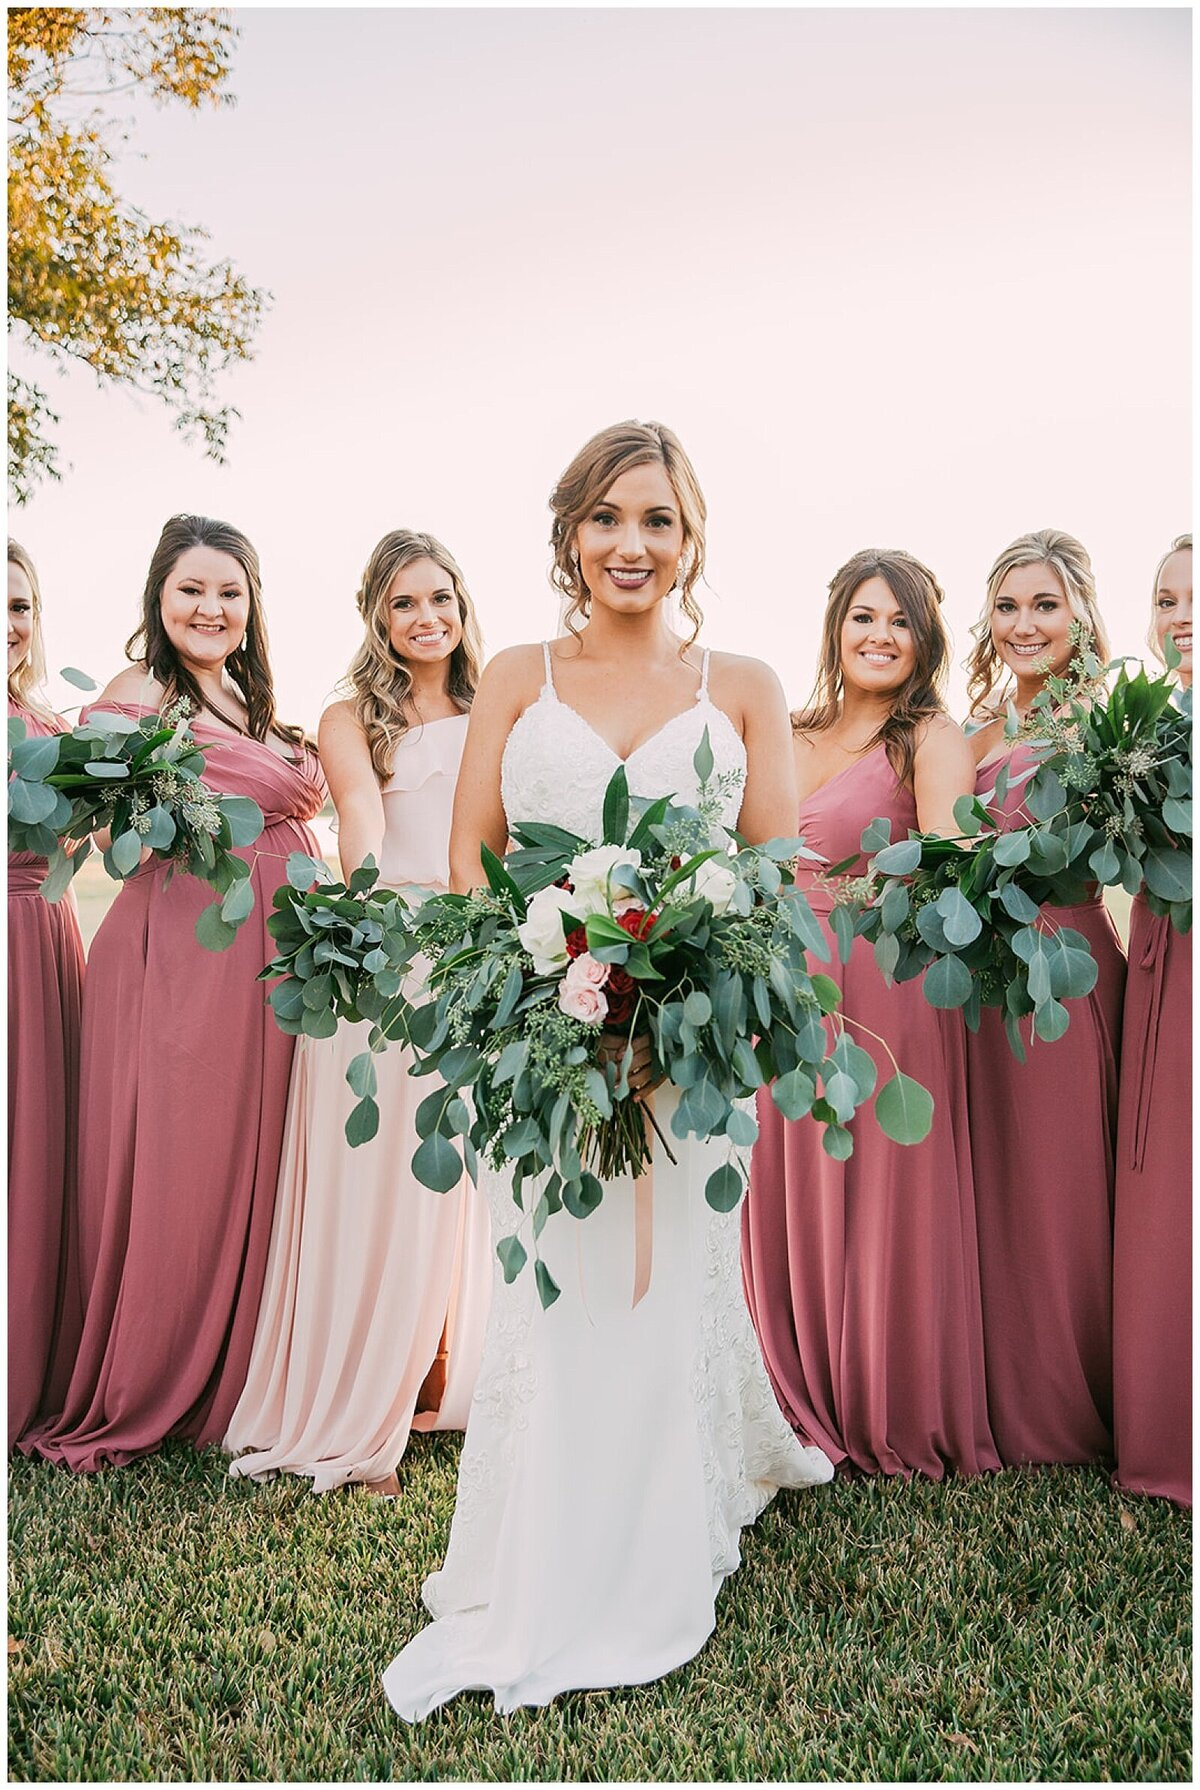 Rustic Greenery Indoor Outdoor Wedding at Emery's Buffalo Creek - Houston Wedding Venue_0122